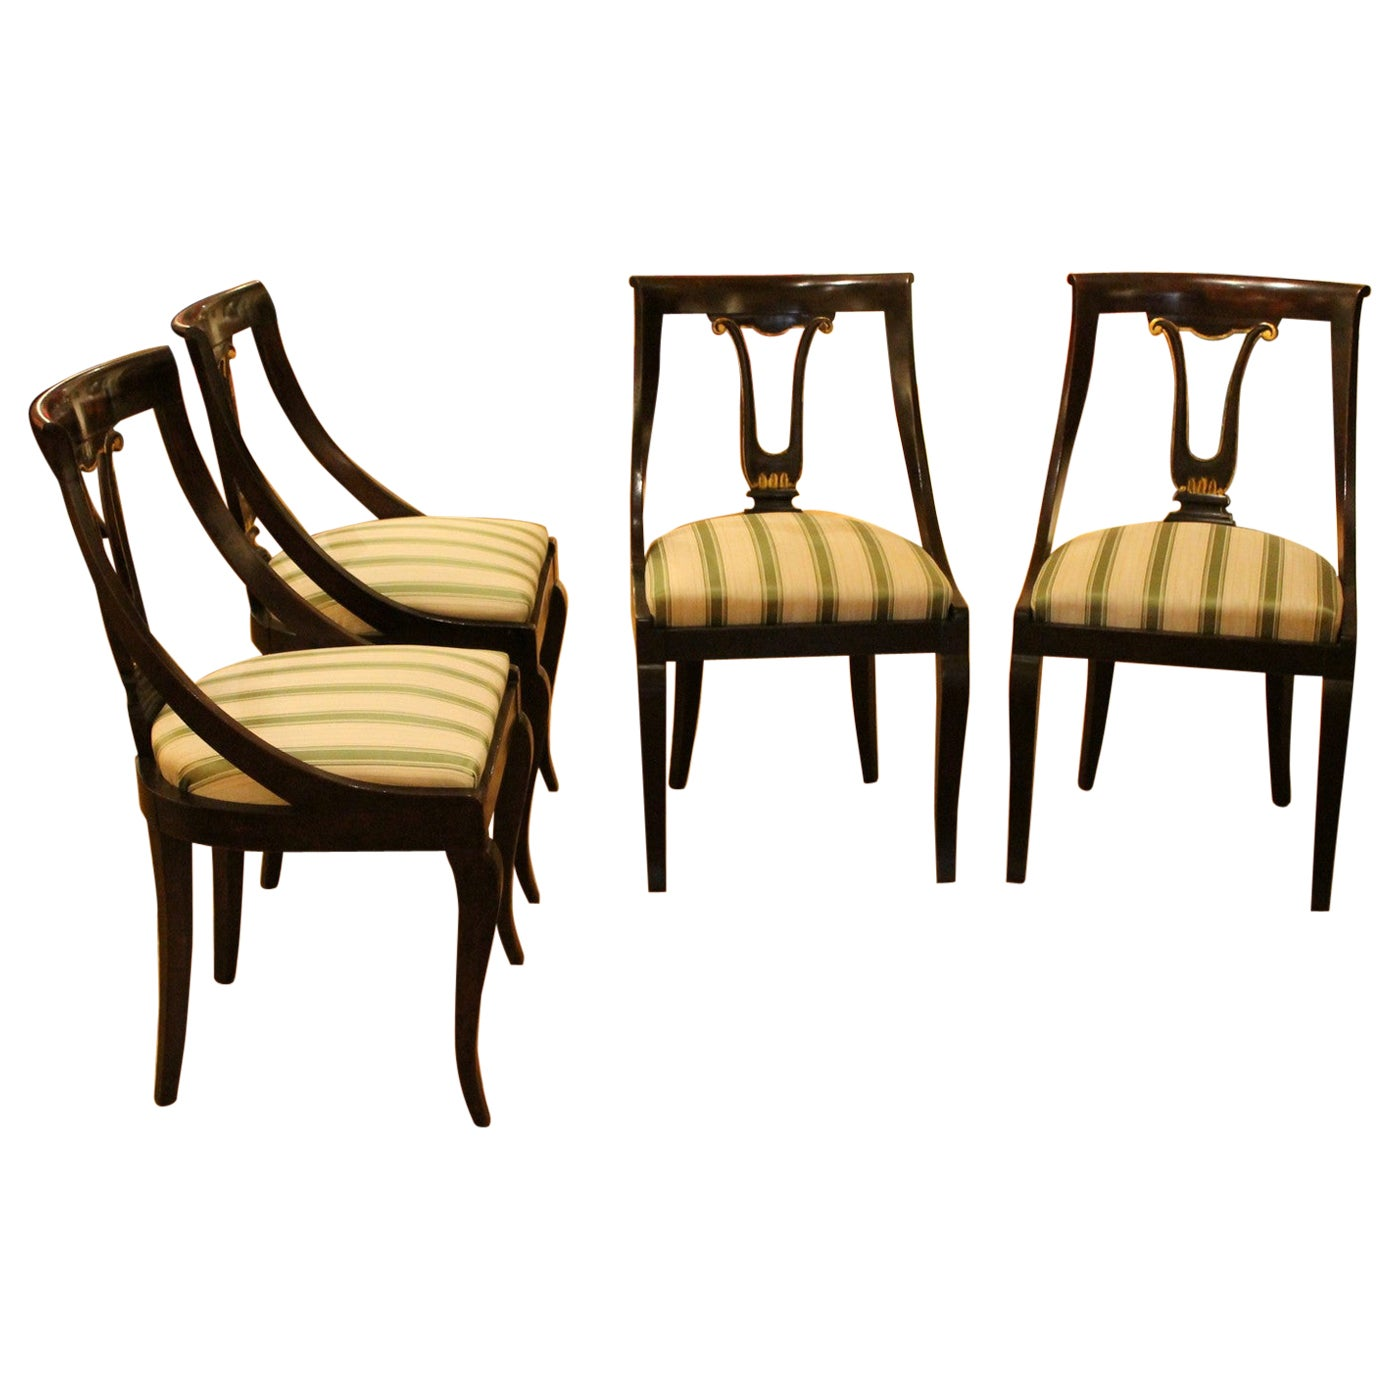 French 18th Century Directoire Mahogany Chairs with Silk Blend Upholster Fabric